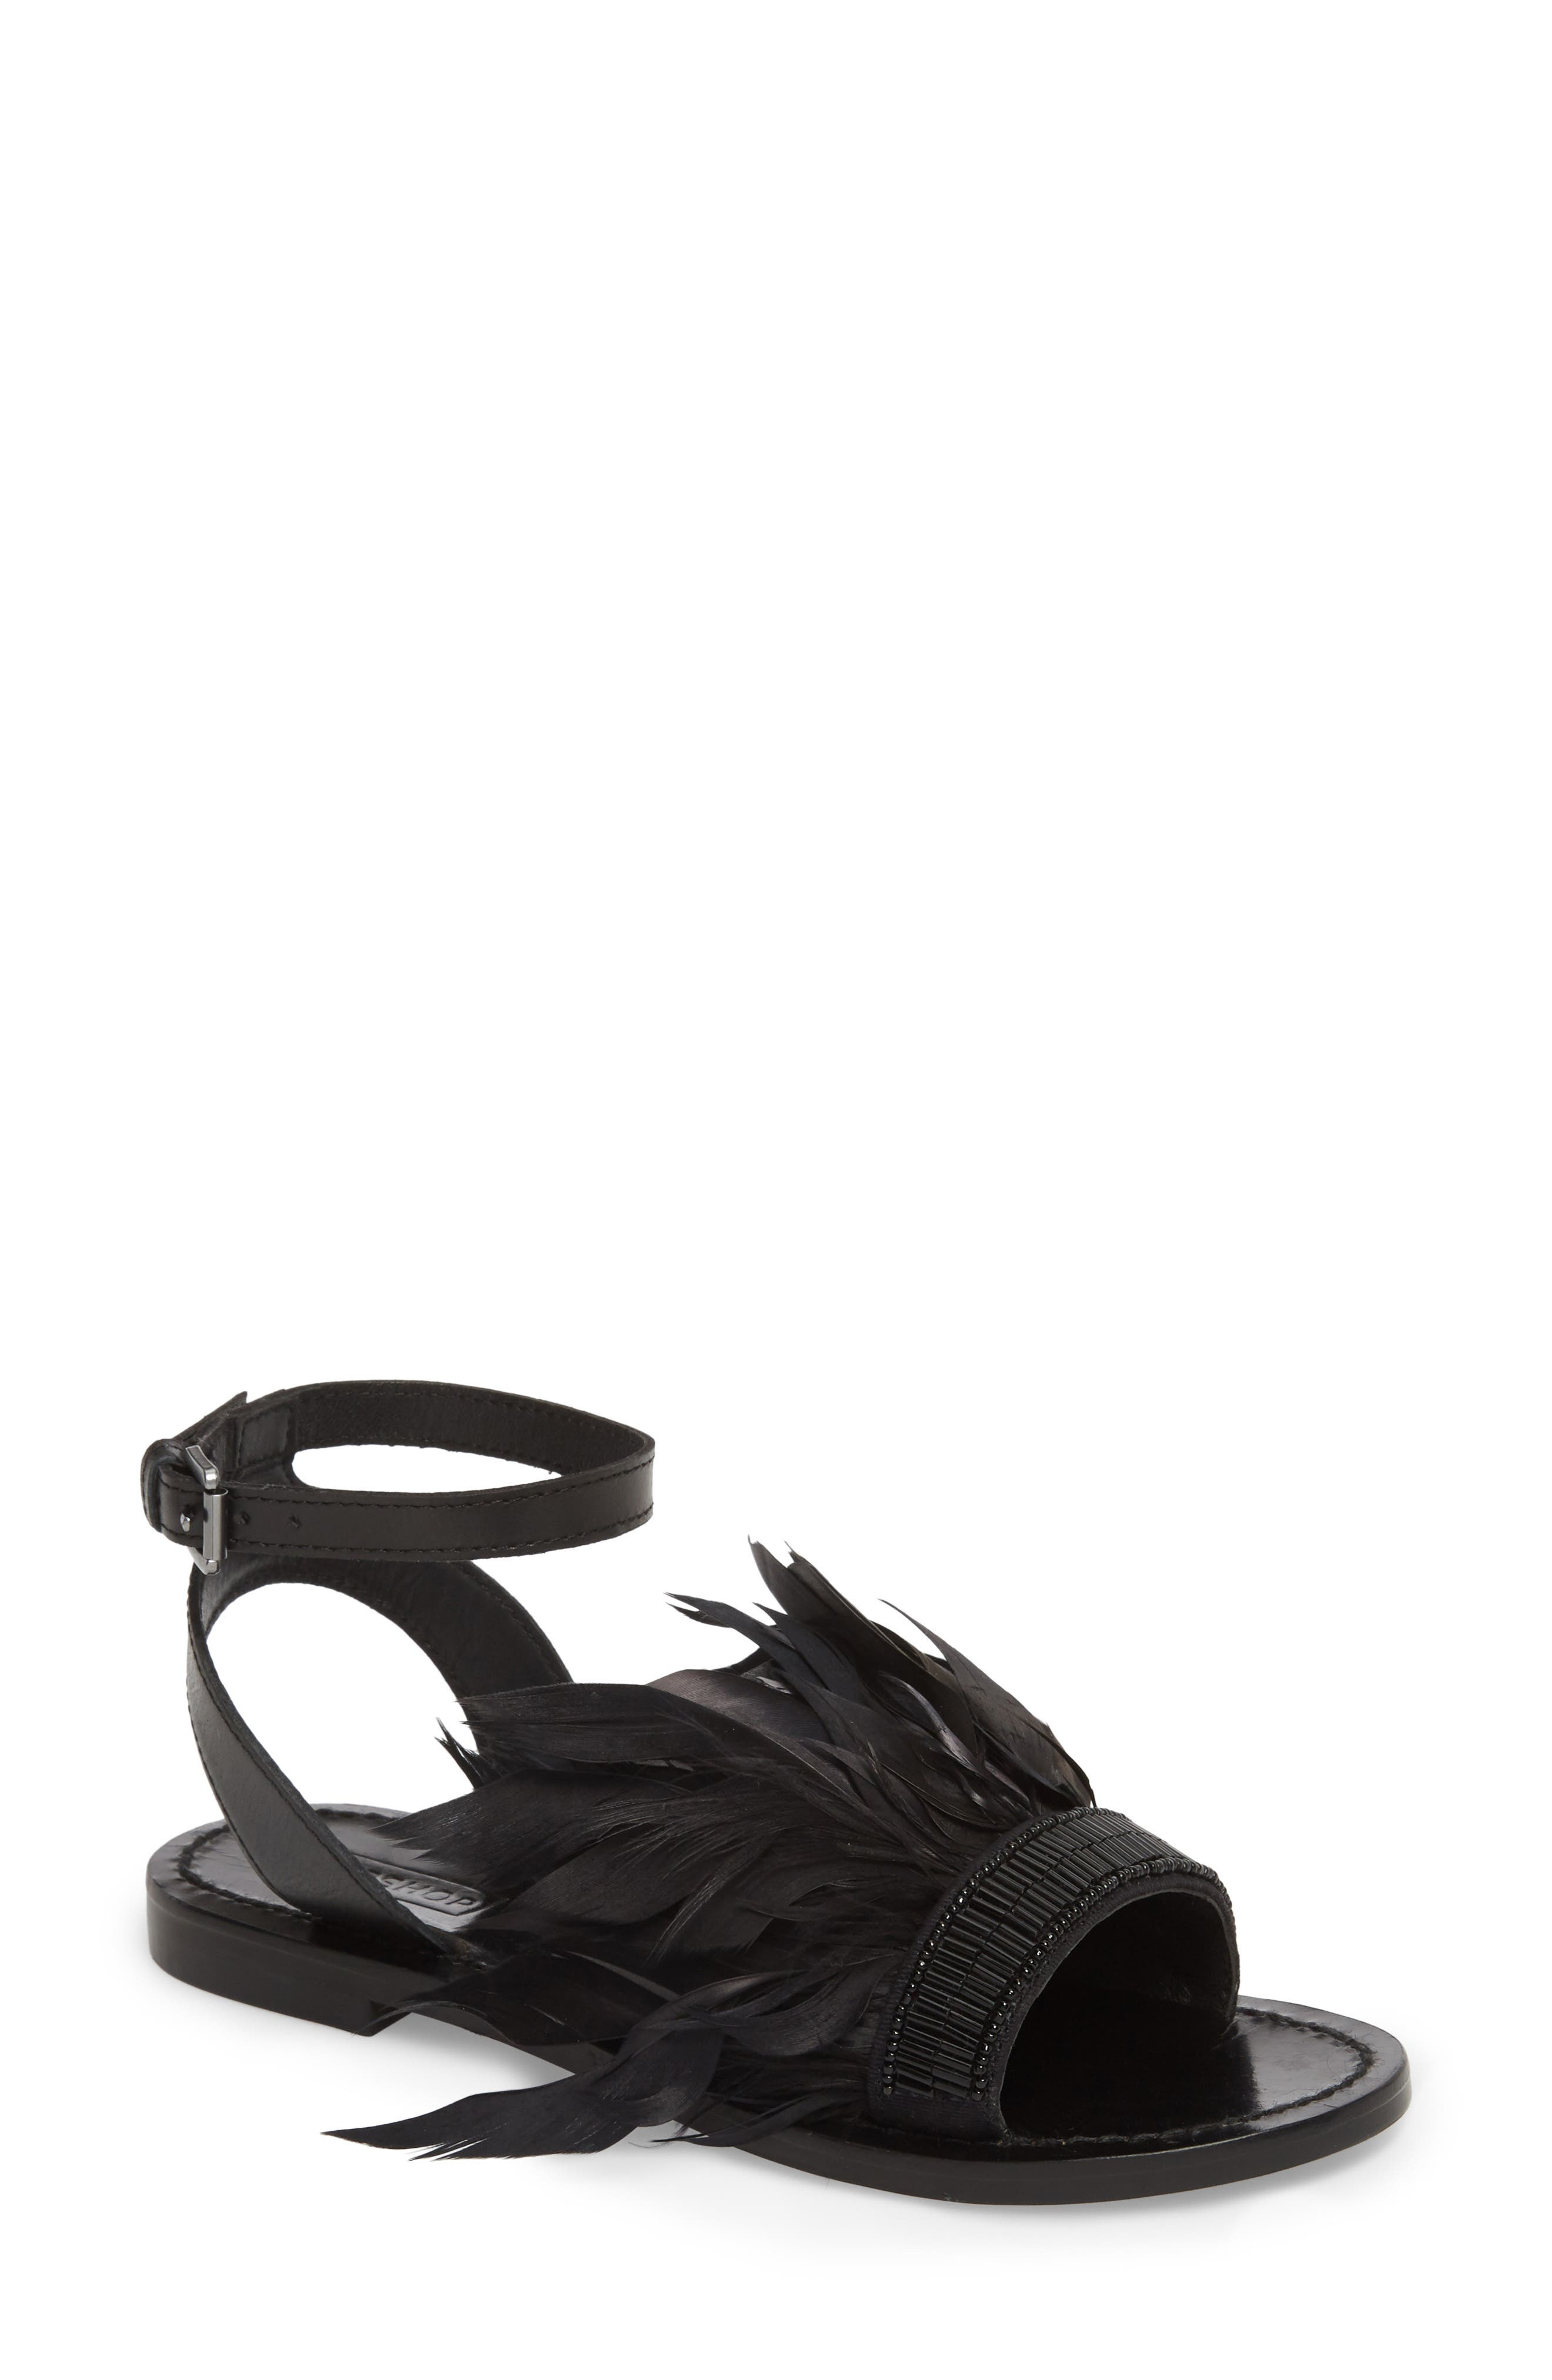 Firework Feathered Sandal,                         Main,                         color, 001